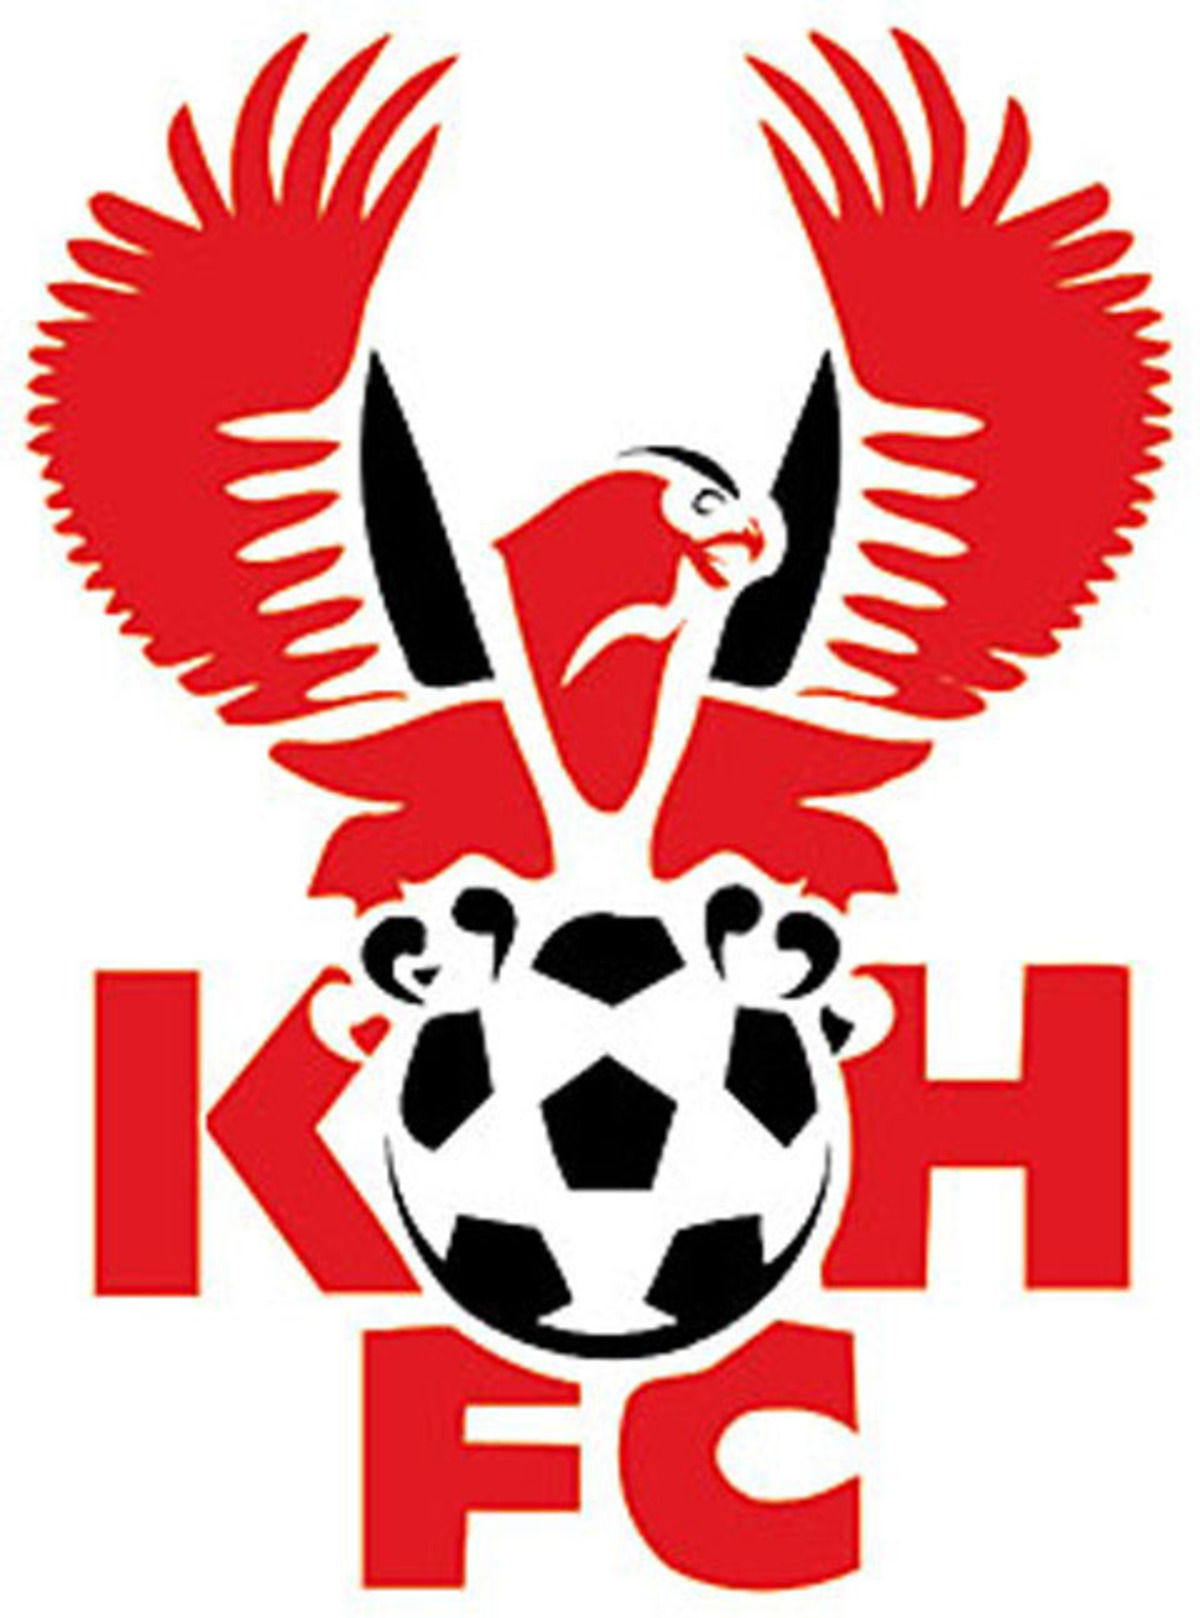 Knight in to boost Harriers coach